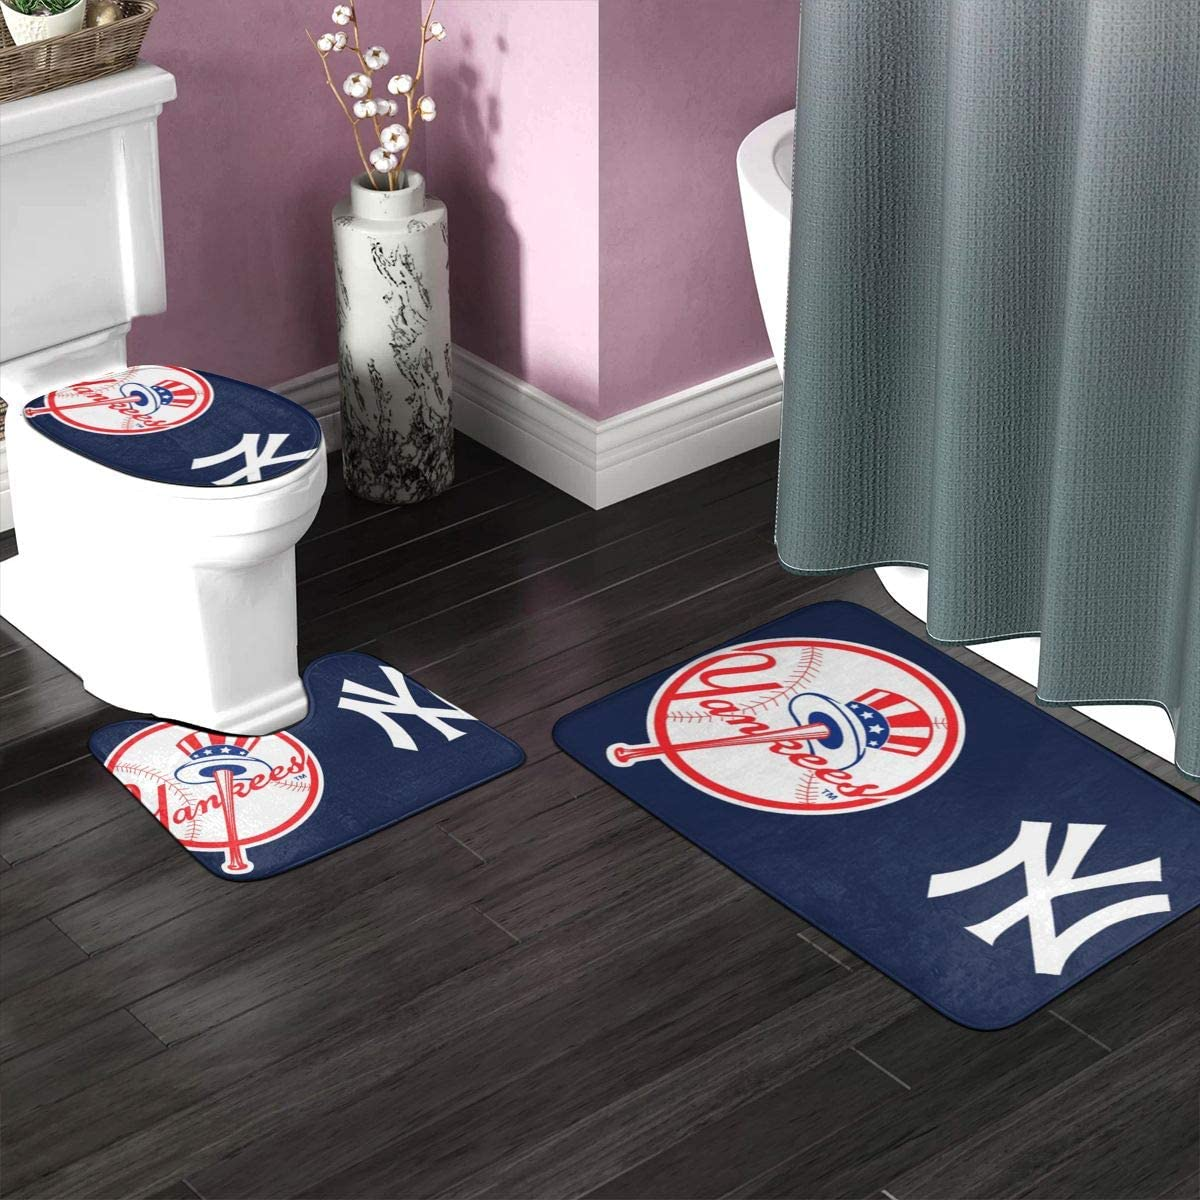 NY New York 3 Pieces Bathroom Rugs and Mats Sets Non Slip Water Absorbent Bath Rug Toilet Seat Lid Cover U-Shaped Toilet Mat Home Decor Bathroom Antiskid pad